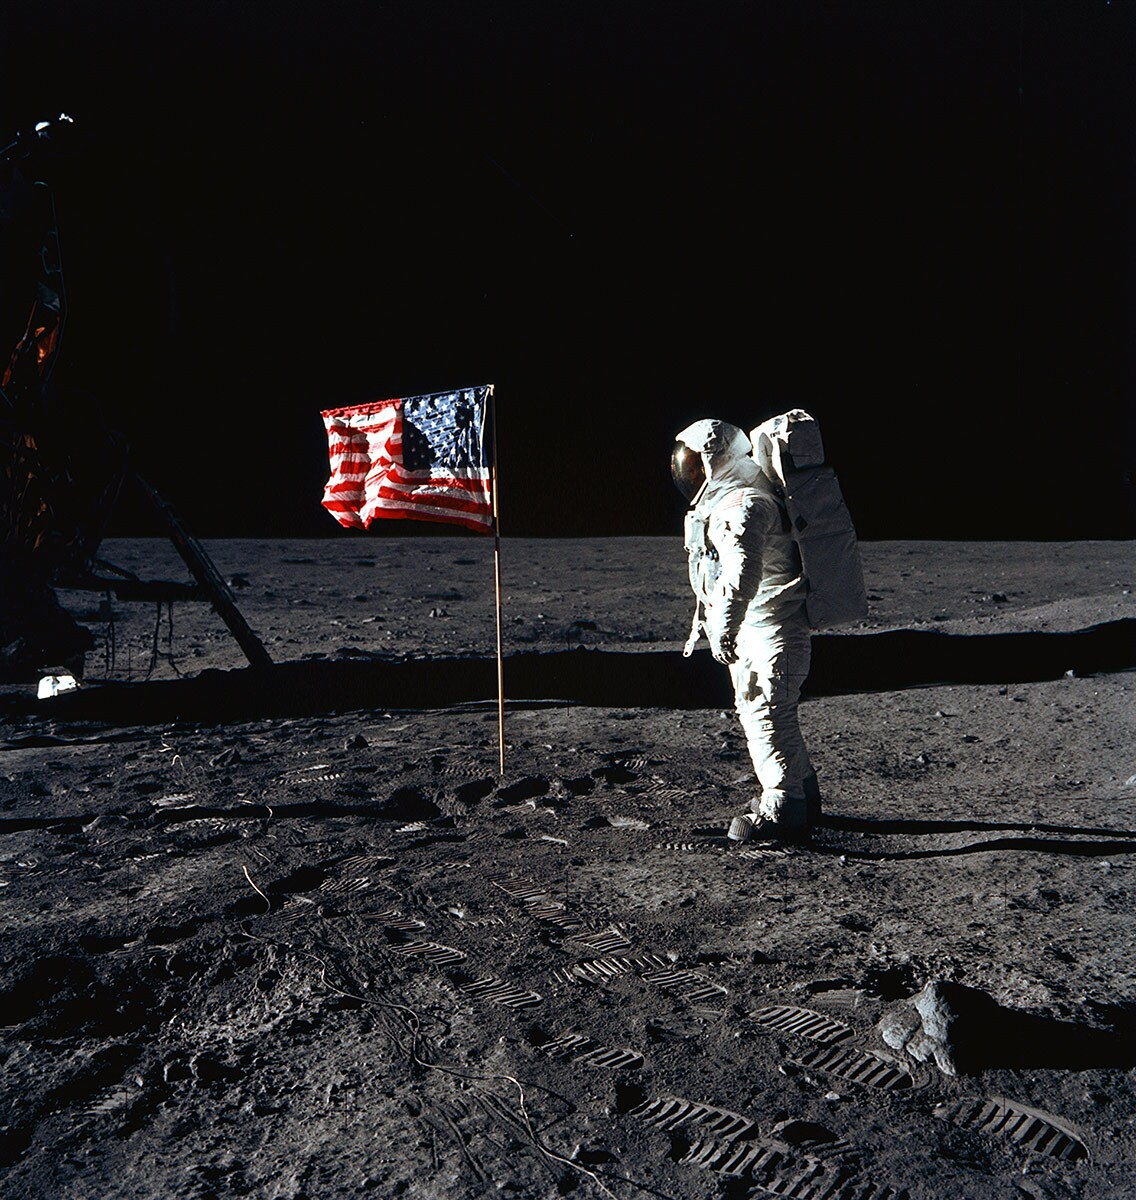 Astronaut Edwin E. Aldrin Jr., lunar module pilot of the first lunar landing mission, poses for a photograph beside the deployed United States flag during Apollo 11 extravehicular activity (EVA) on the lunar surface. | Flickr/NASA Johnson/Creative Commons